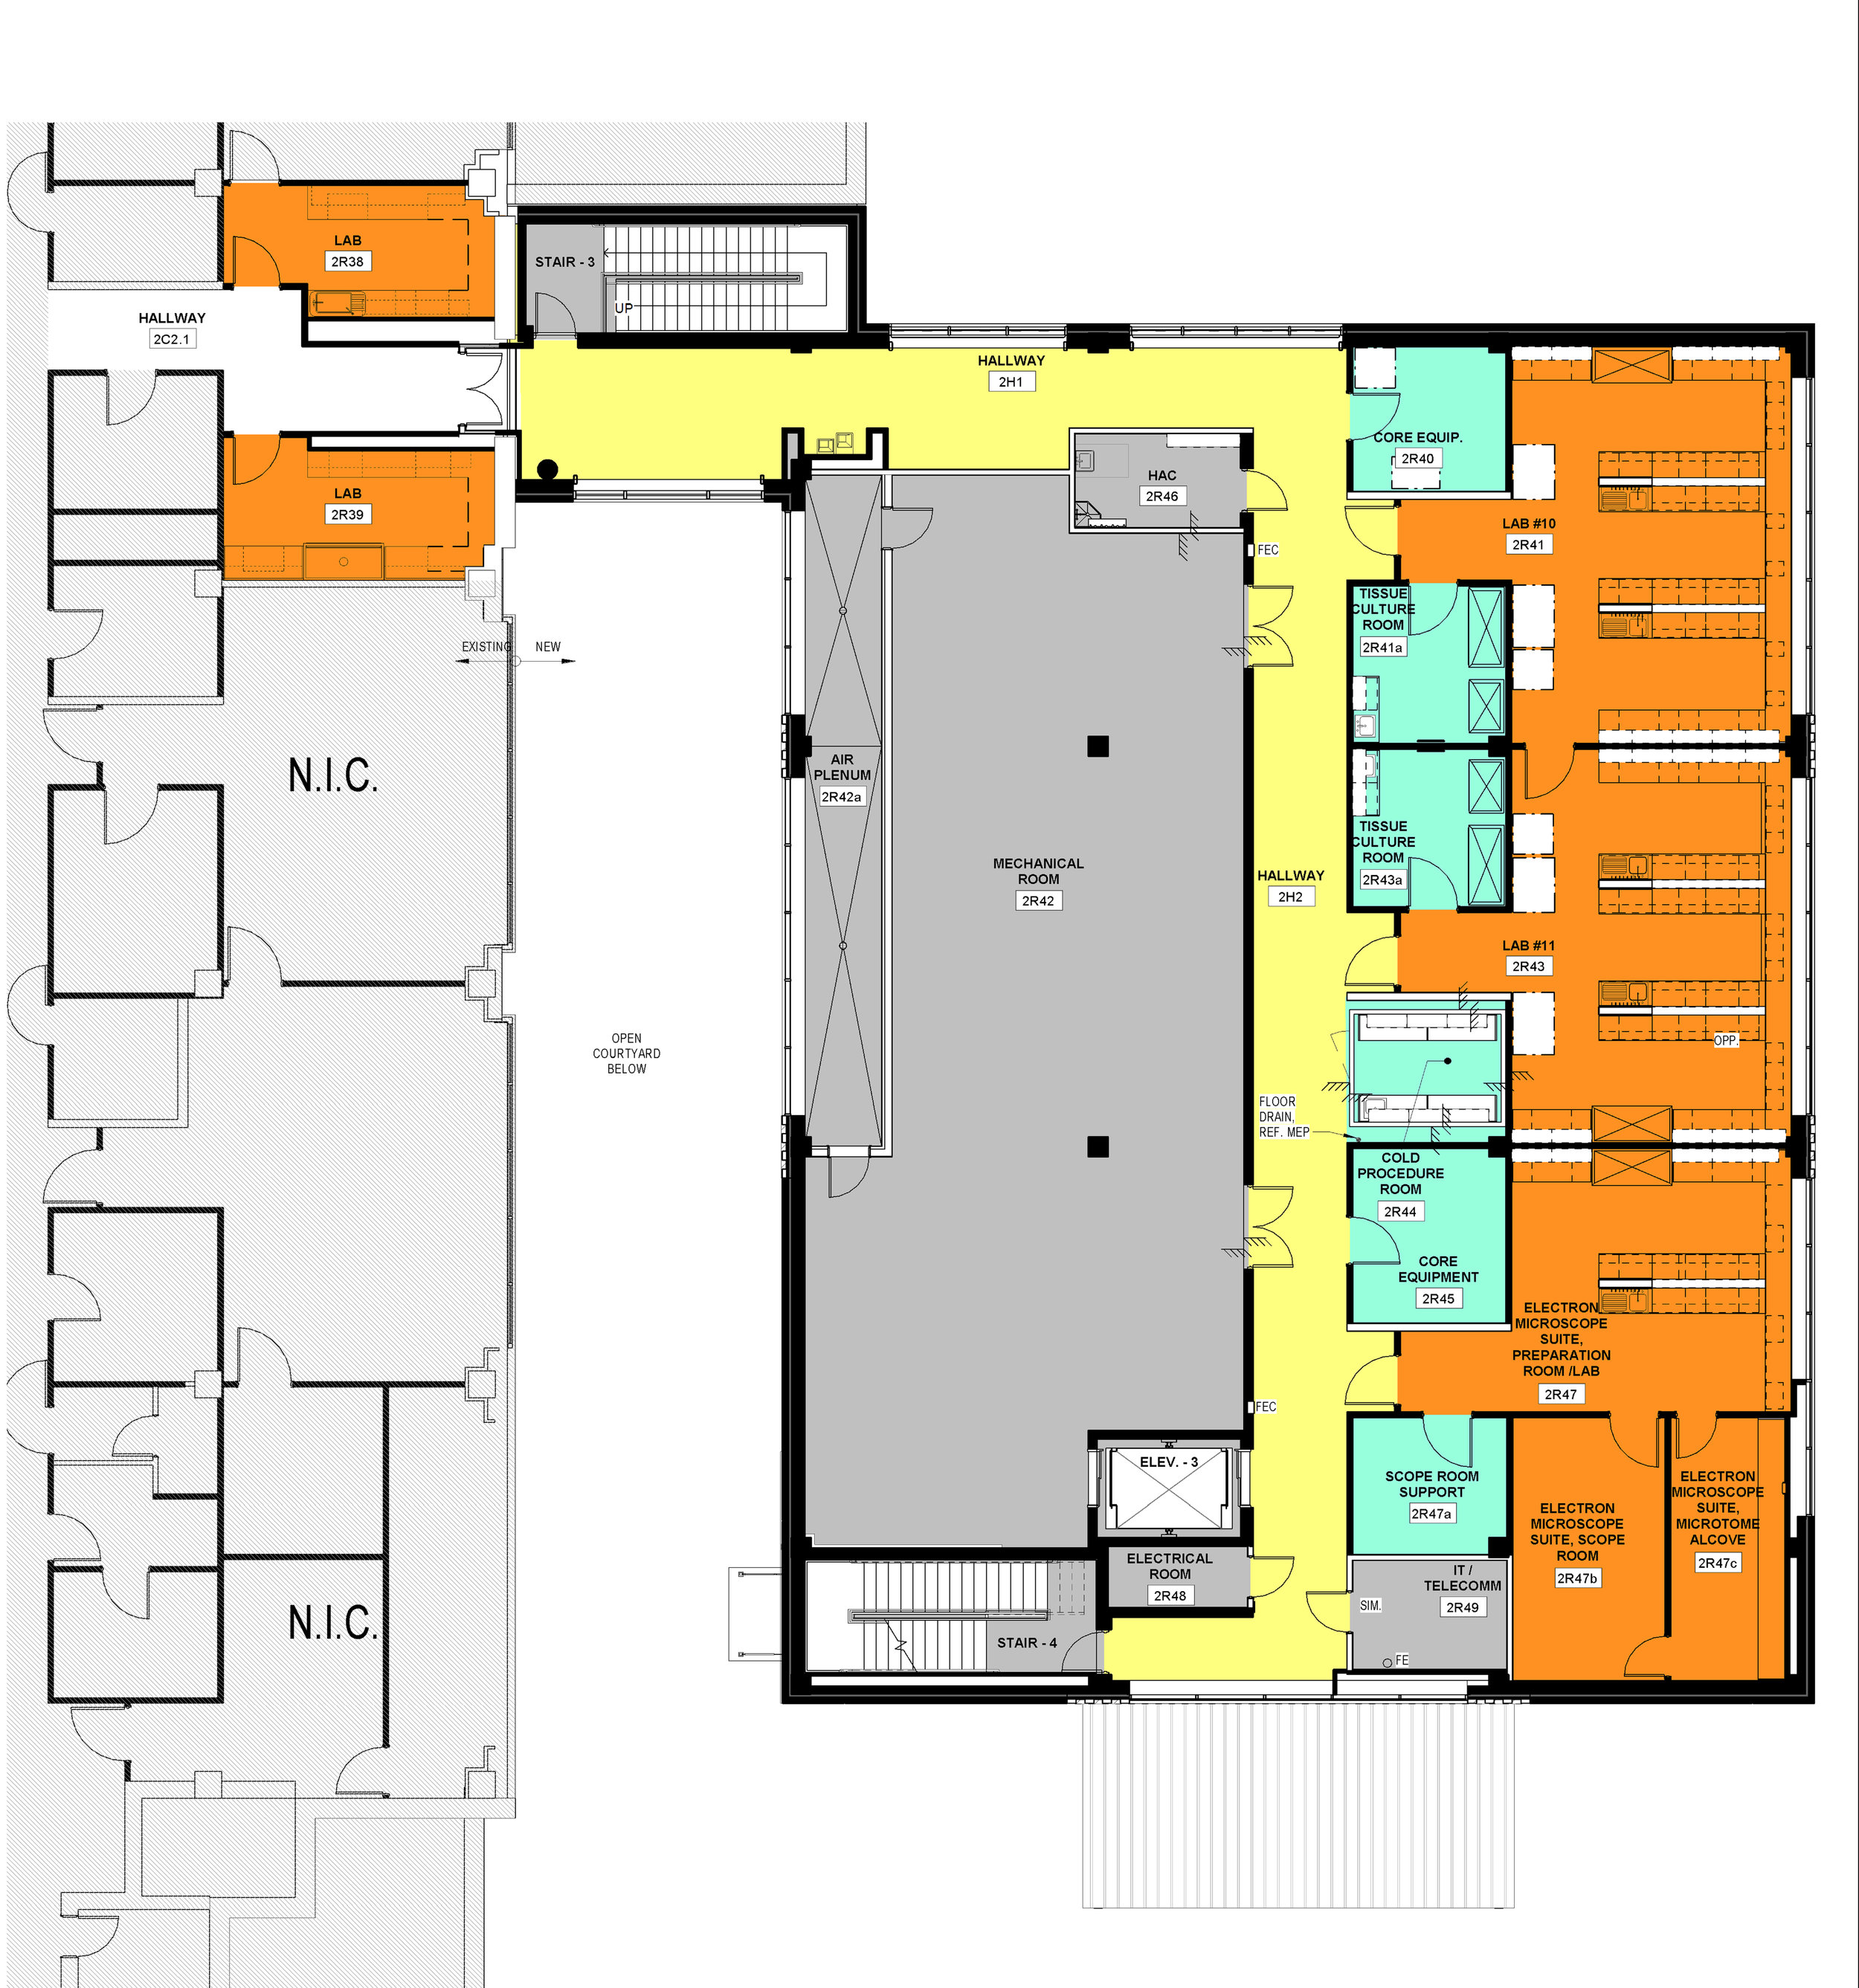 Presentation Second Floor Plan.jpg